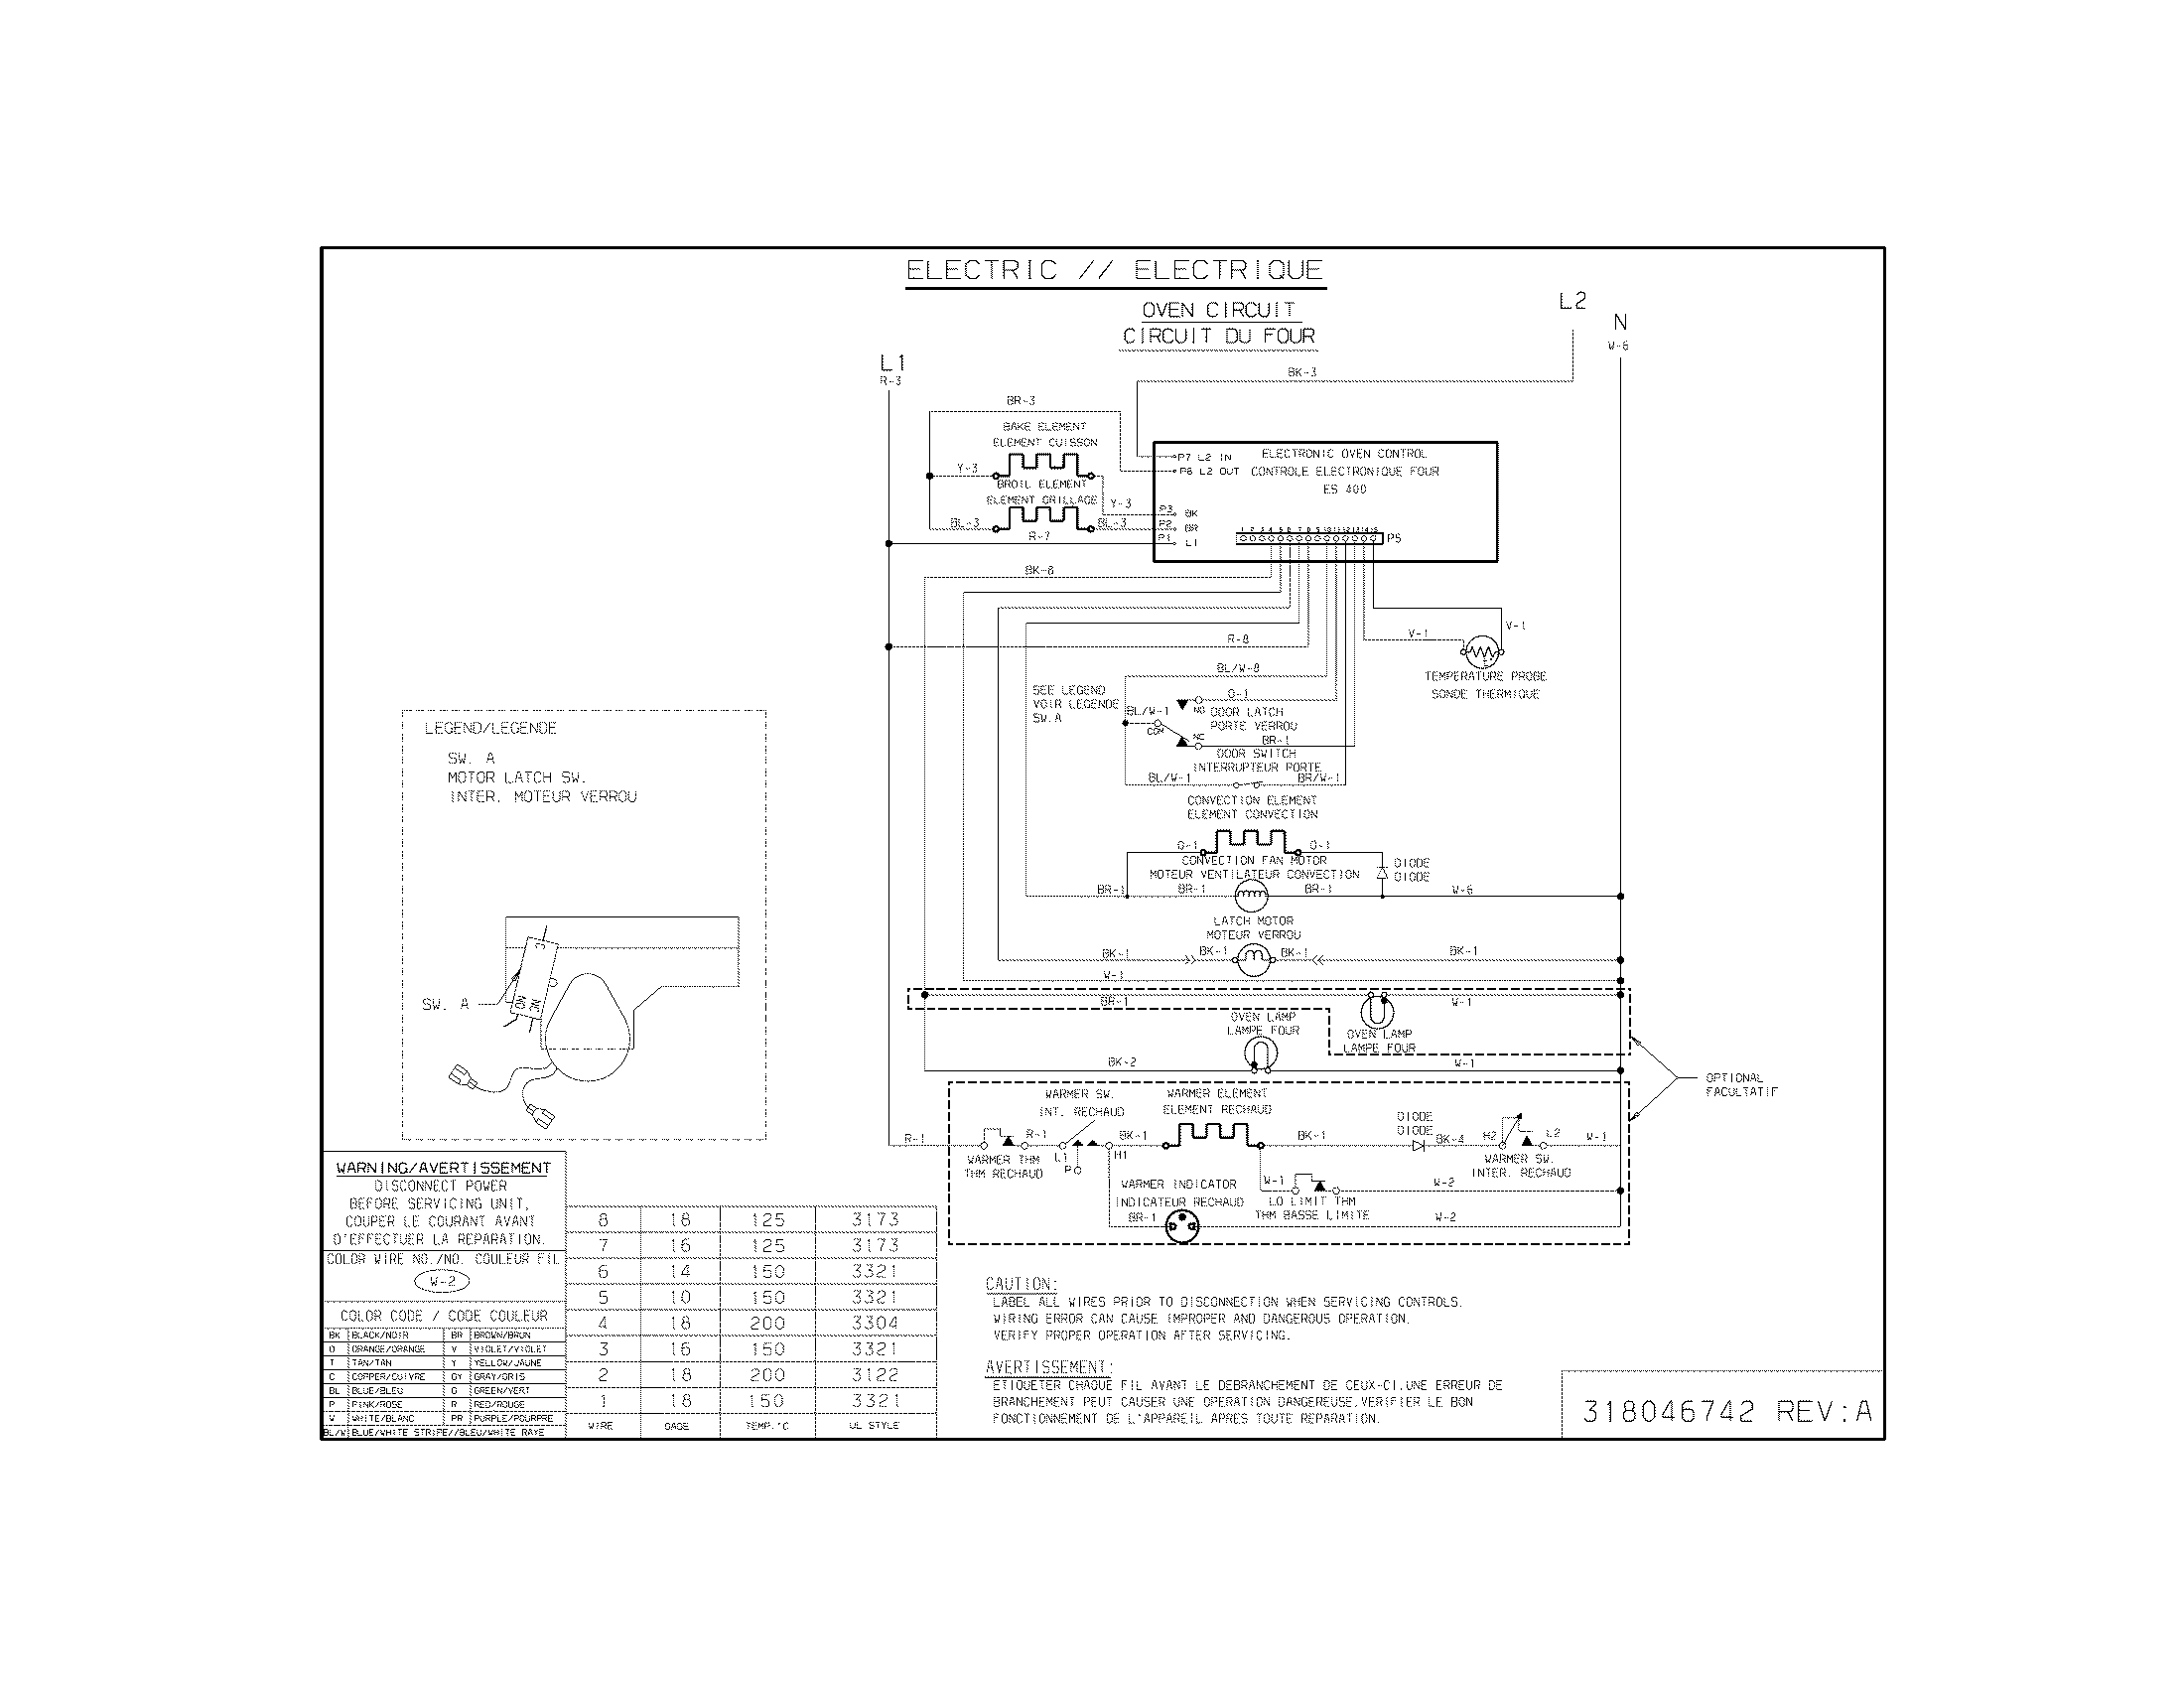 von duprin wiring harness wiring diagram rh aiandco co Von Duprin PS914 Cut Sheet Von Duprin PS873 Manual